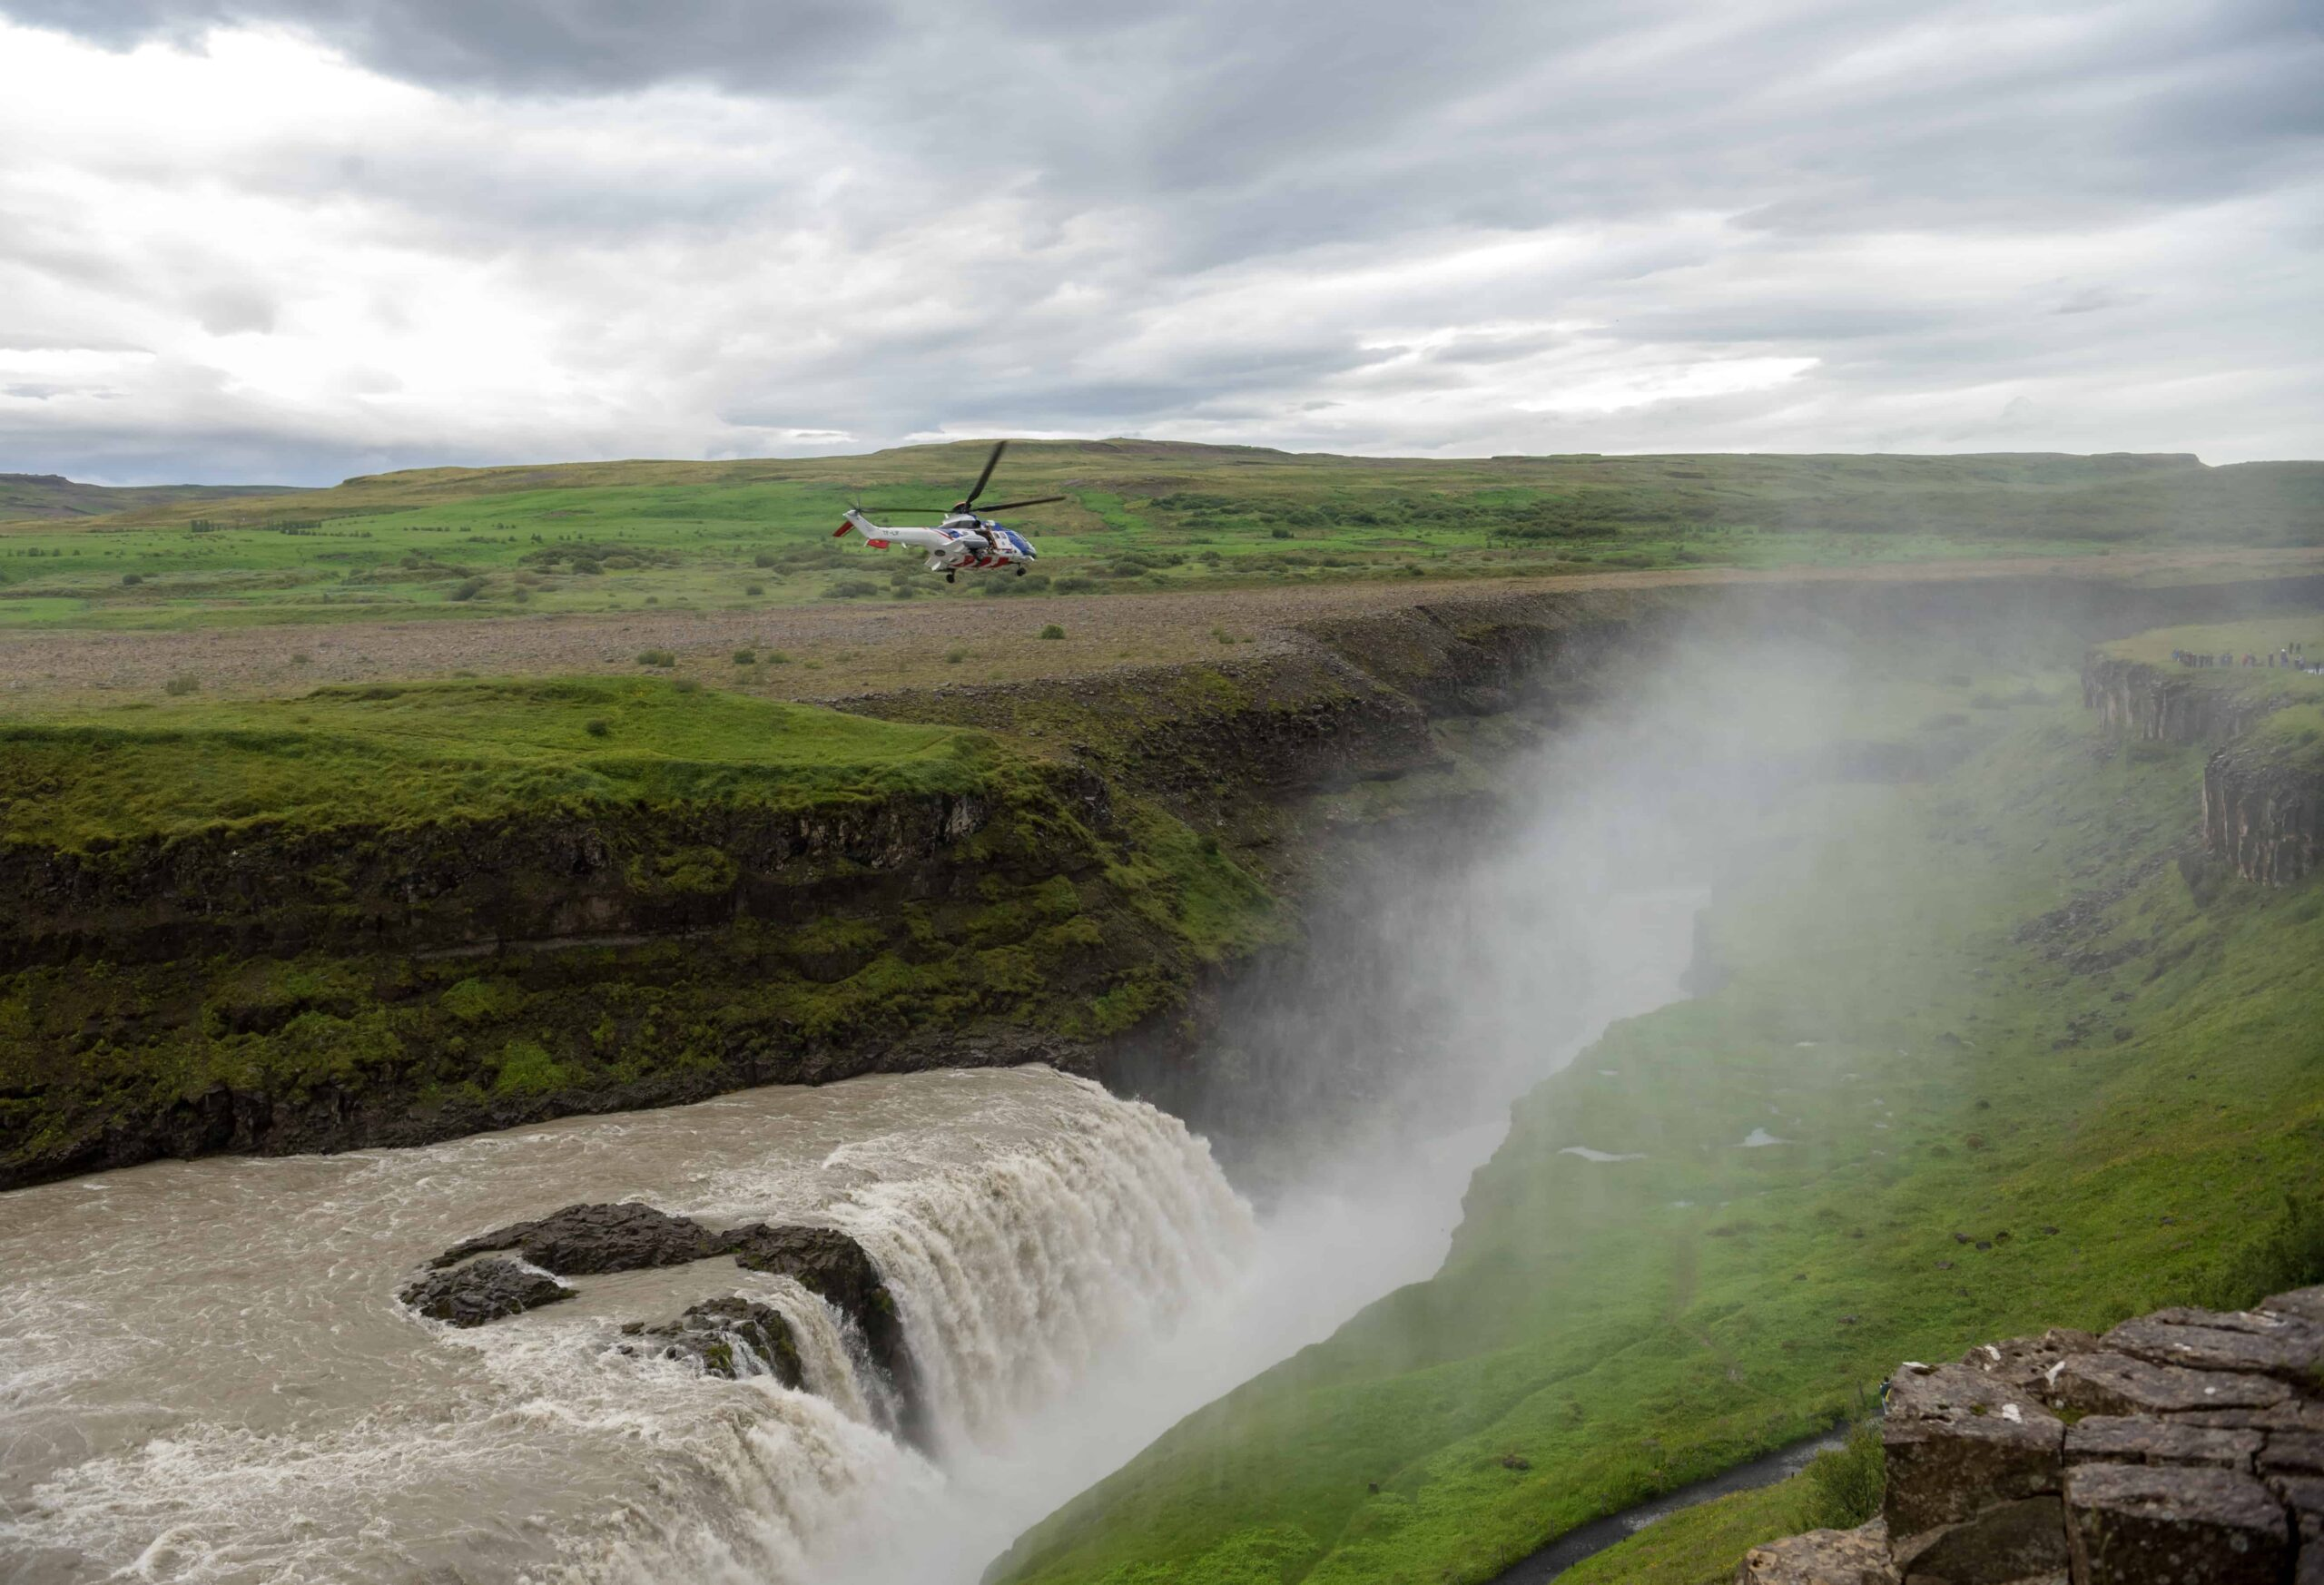 Helicopter at Gullfoss waterfall in Iceland